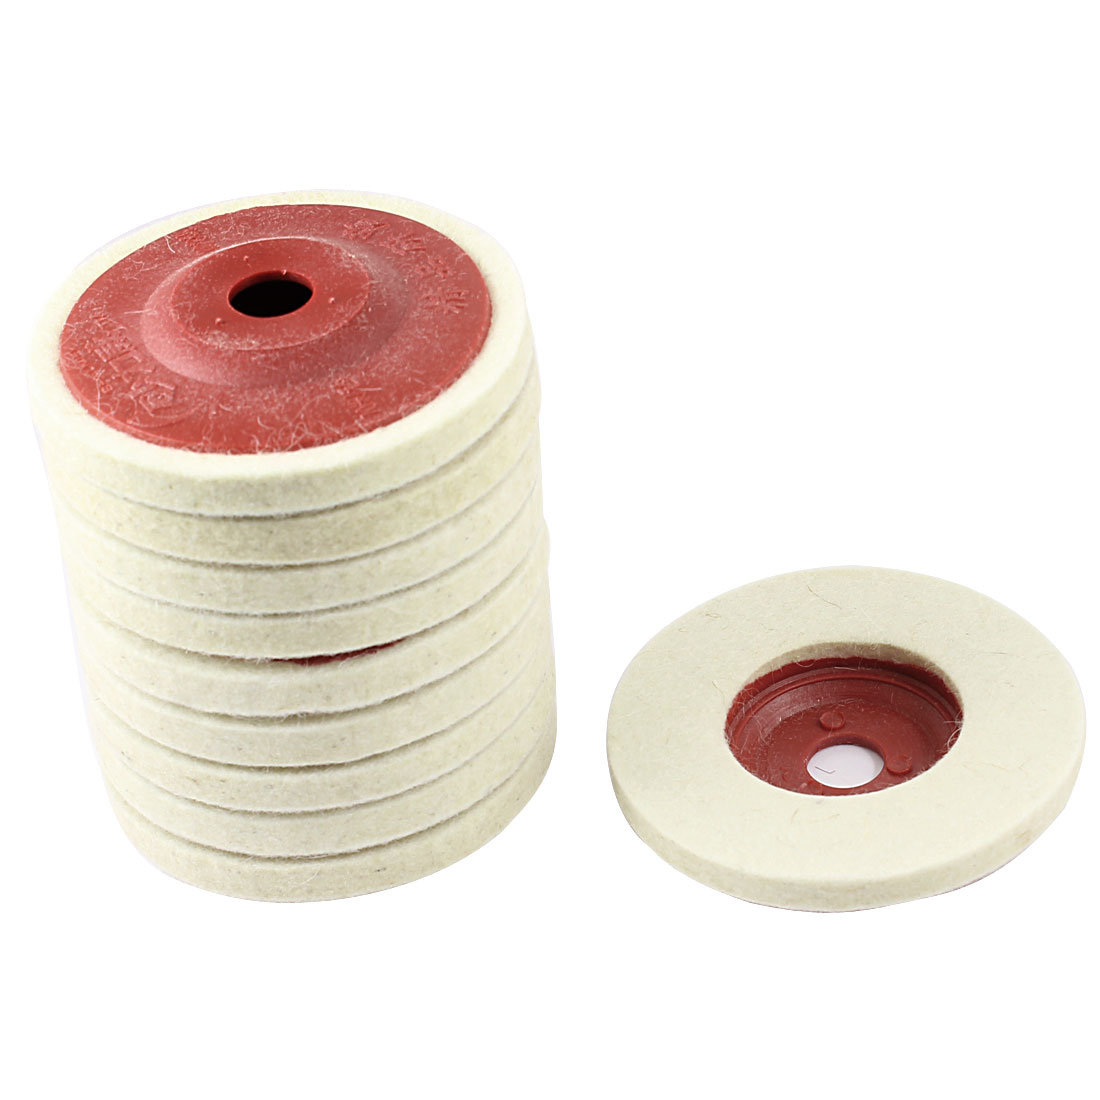 10 Pcs 100mm Outer Dia Metal Polishing Grinding Wheel Sanding Disc Red Beige